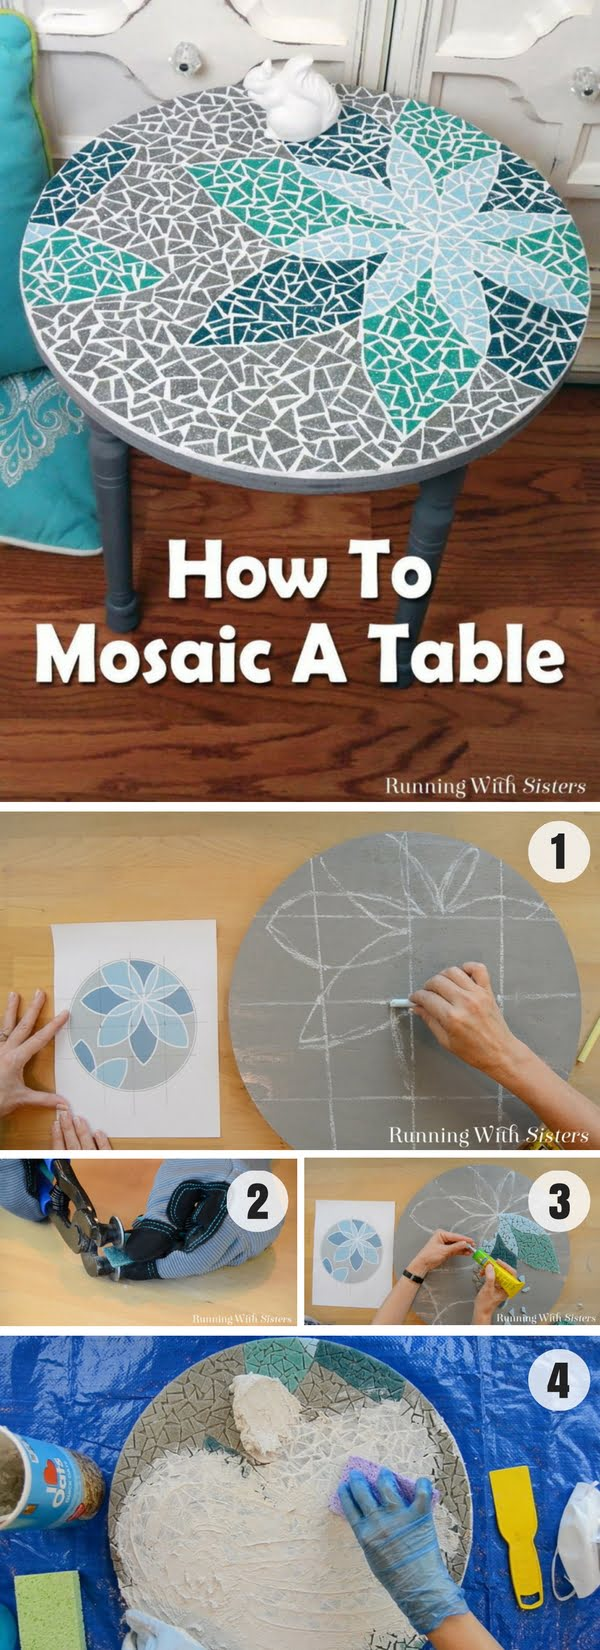 30 Stunning DIY Mosaic Craft Projects for Easy Home Decor - How to create a DIY tabletop mosaic